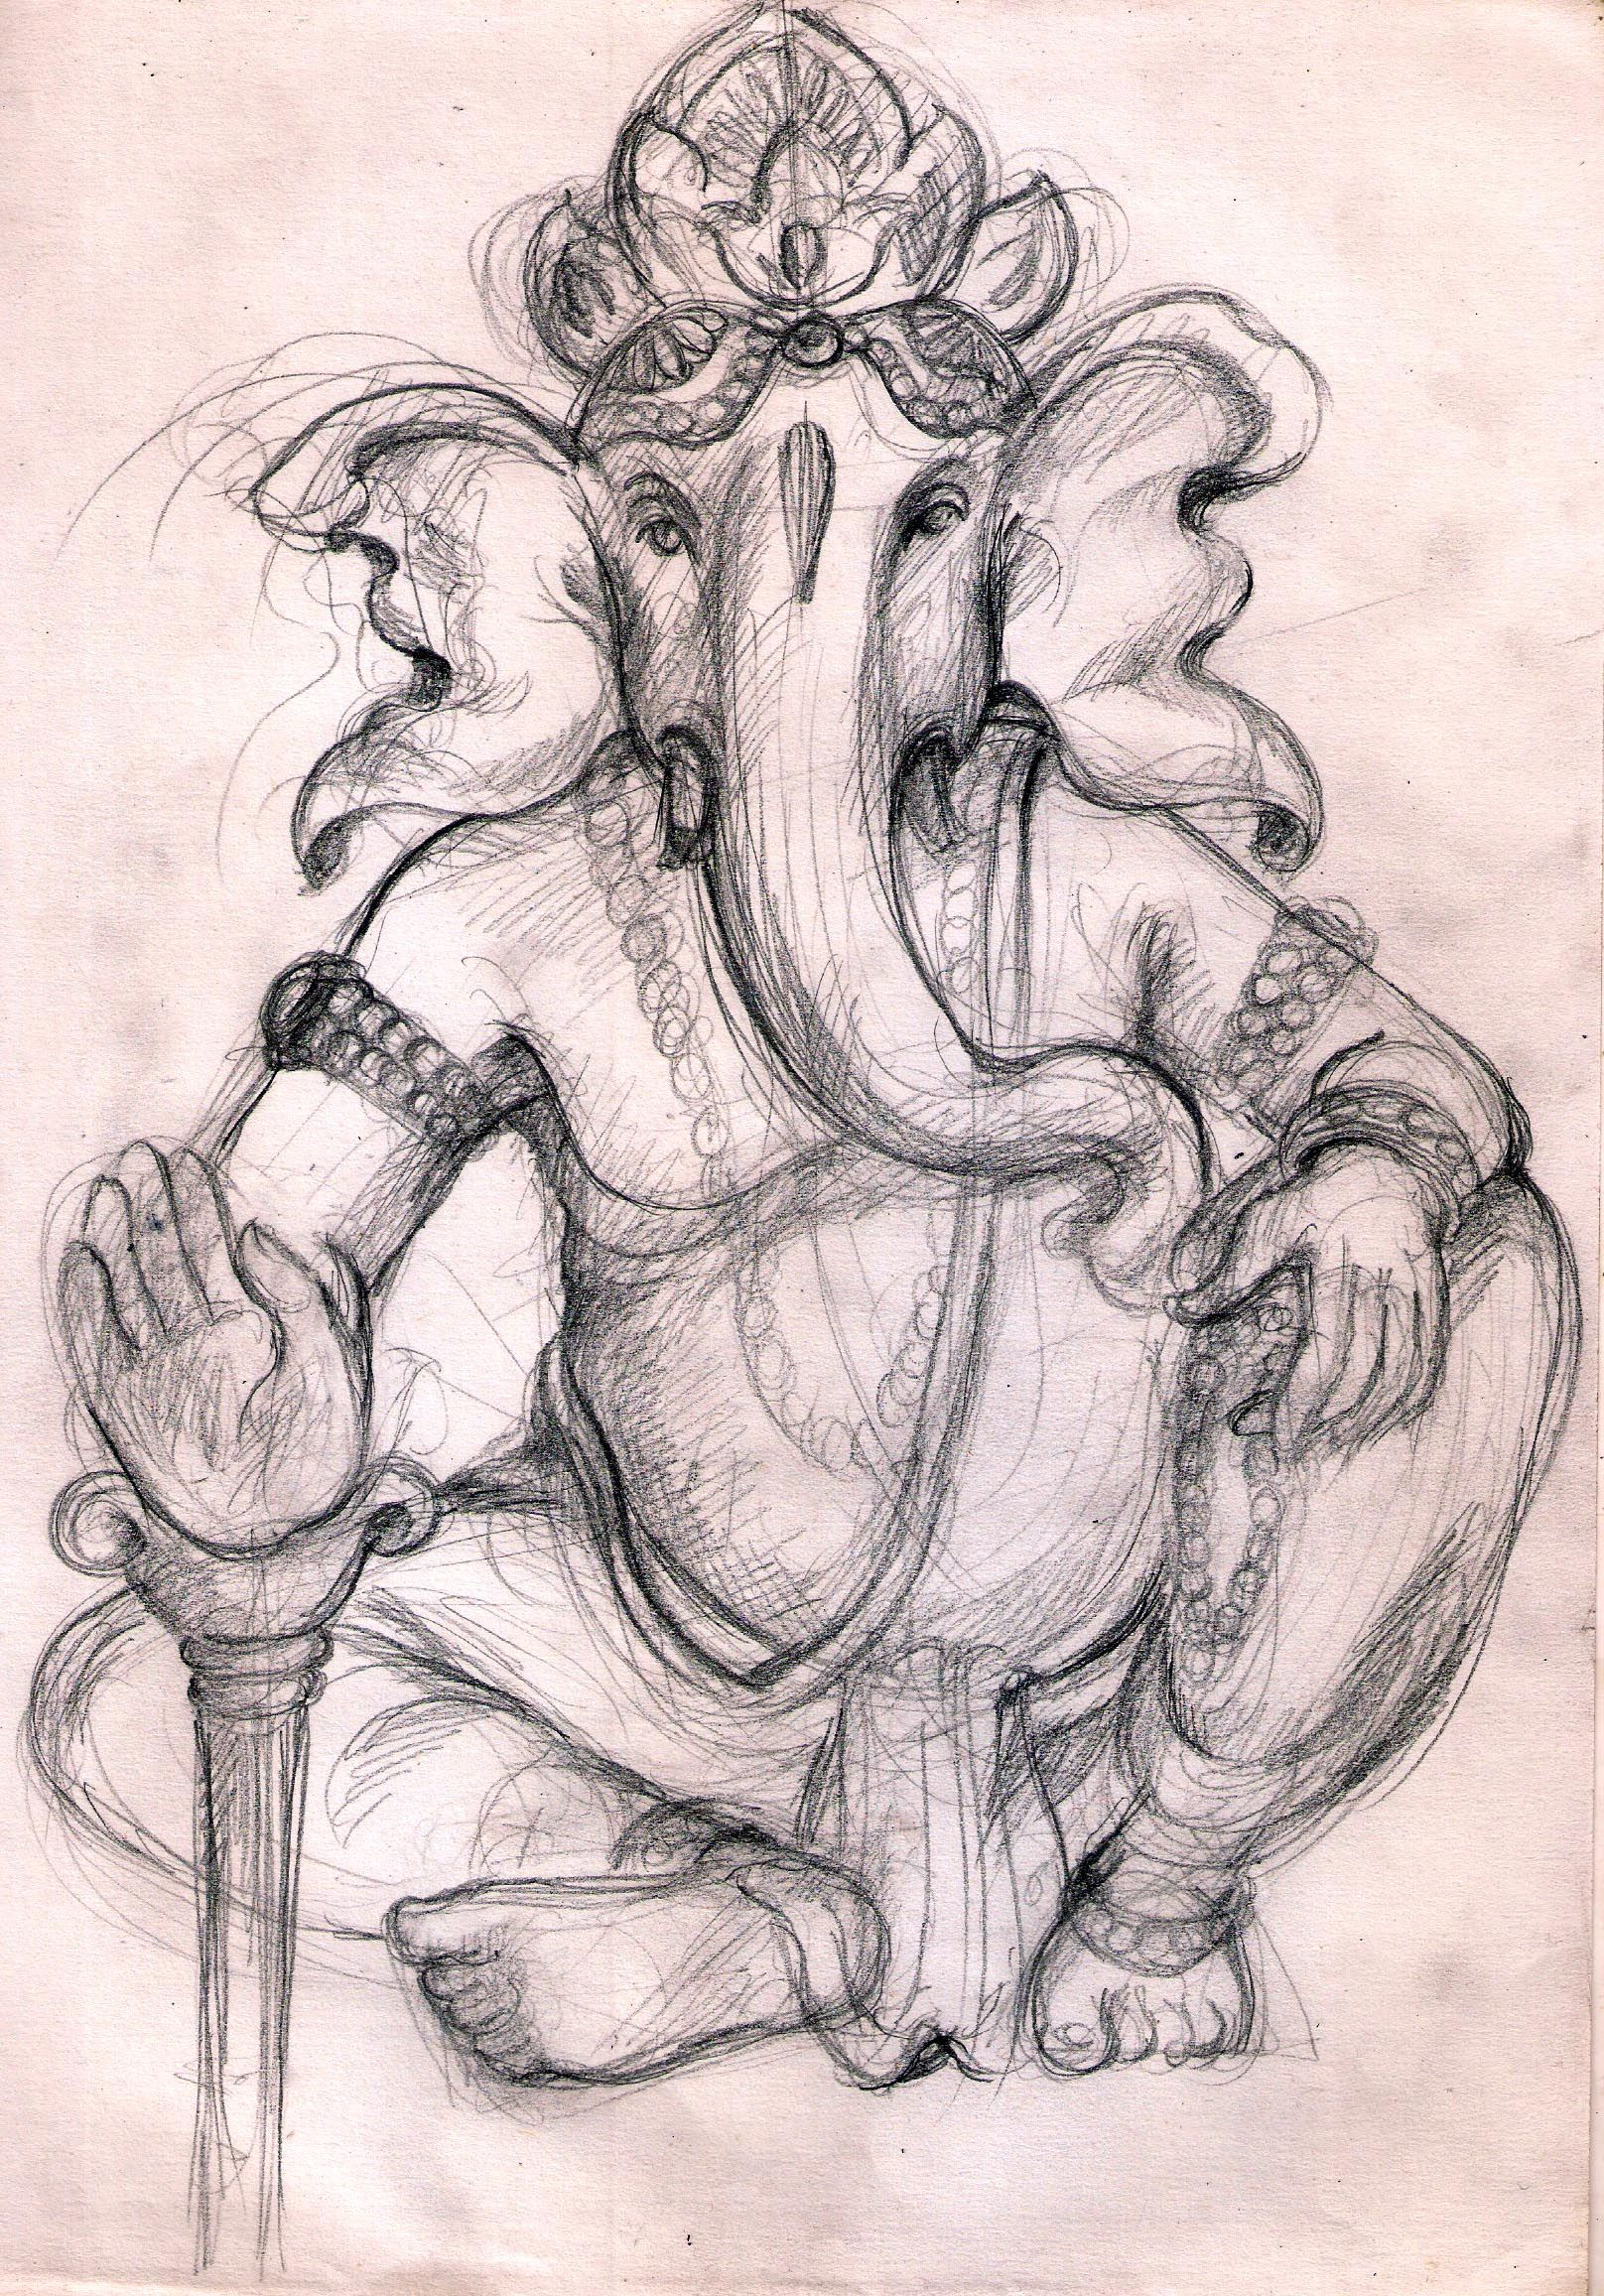 Pencil sketch ganesha pencil sketching ganesha krishna ganesh